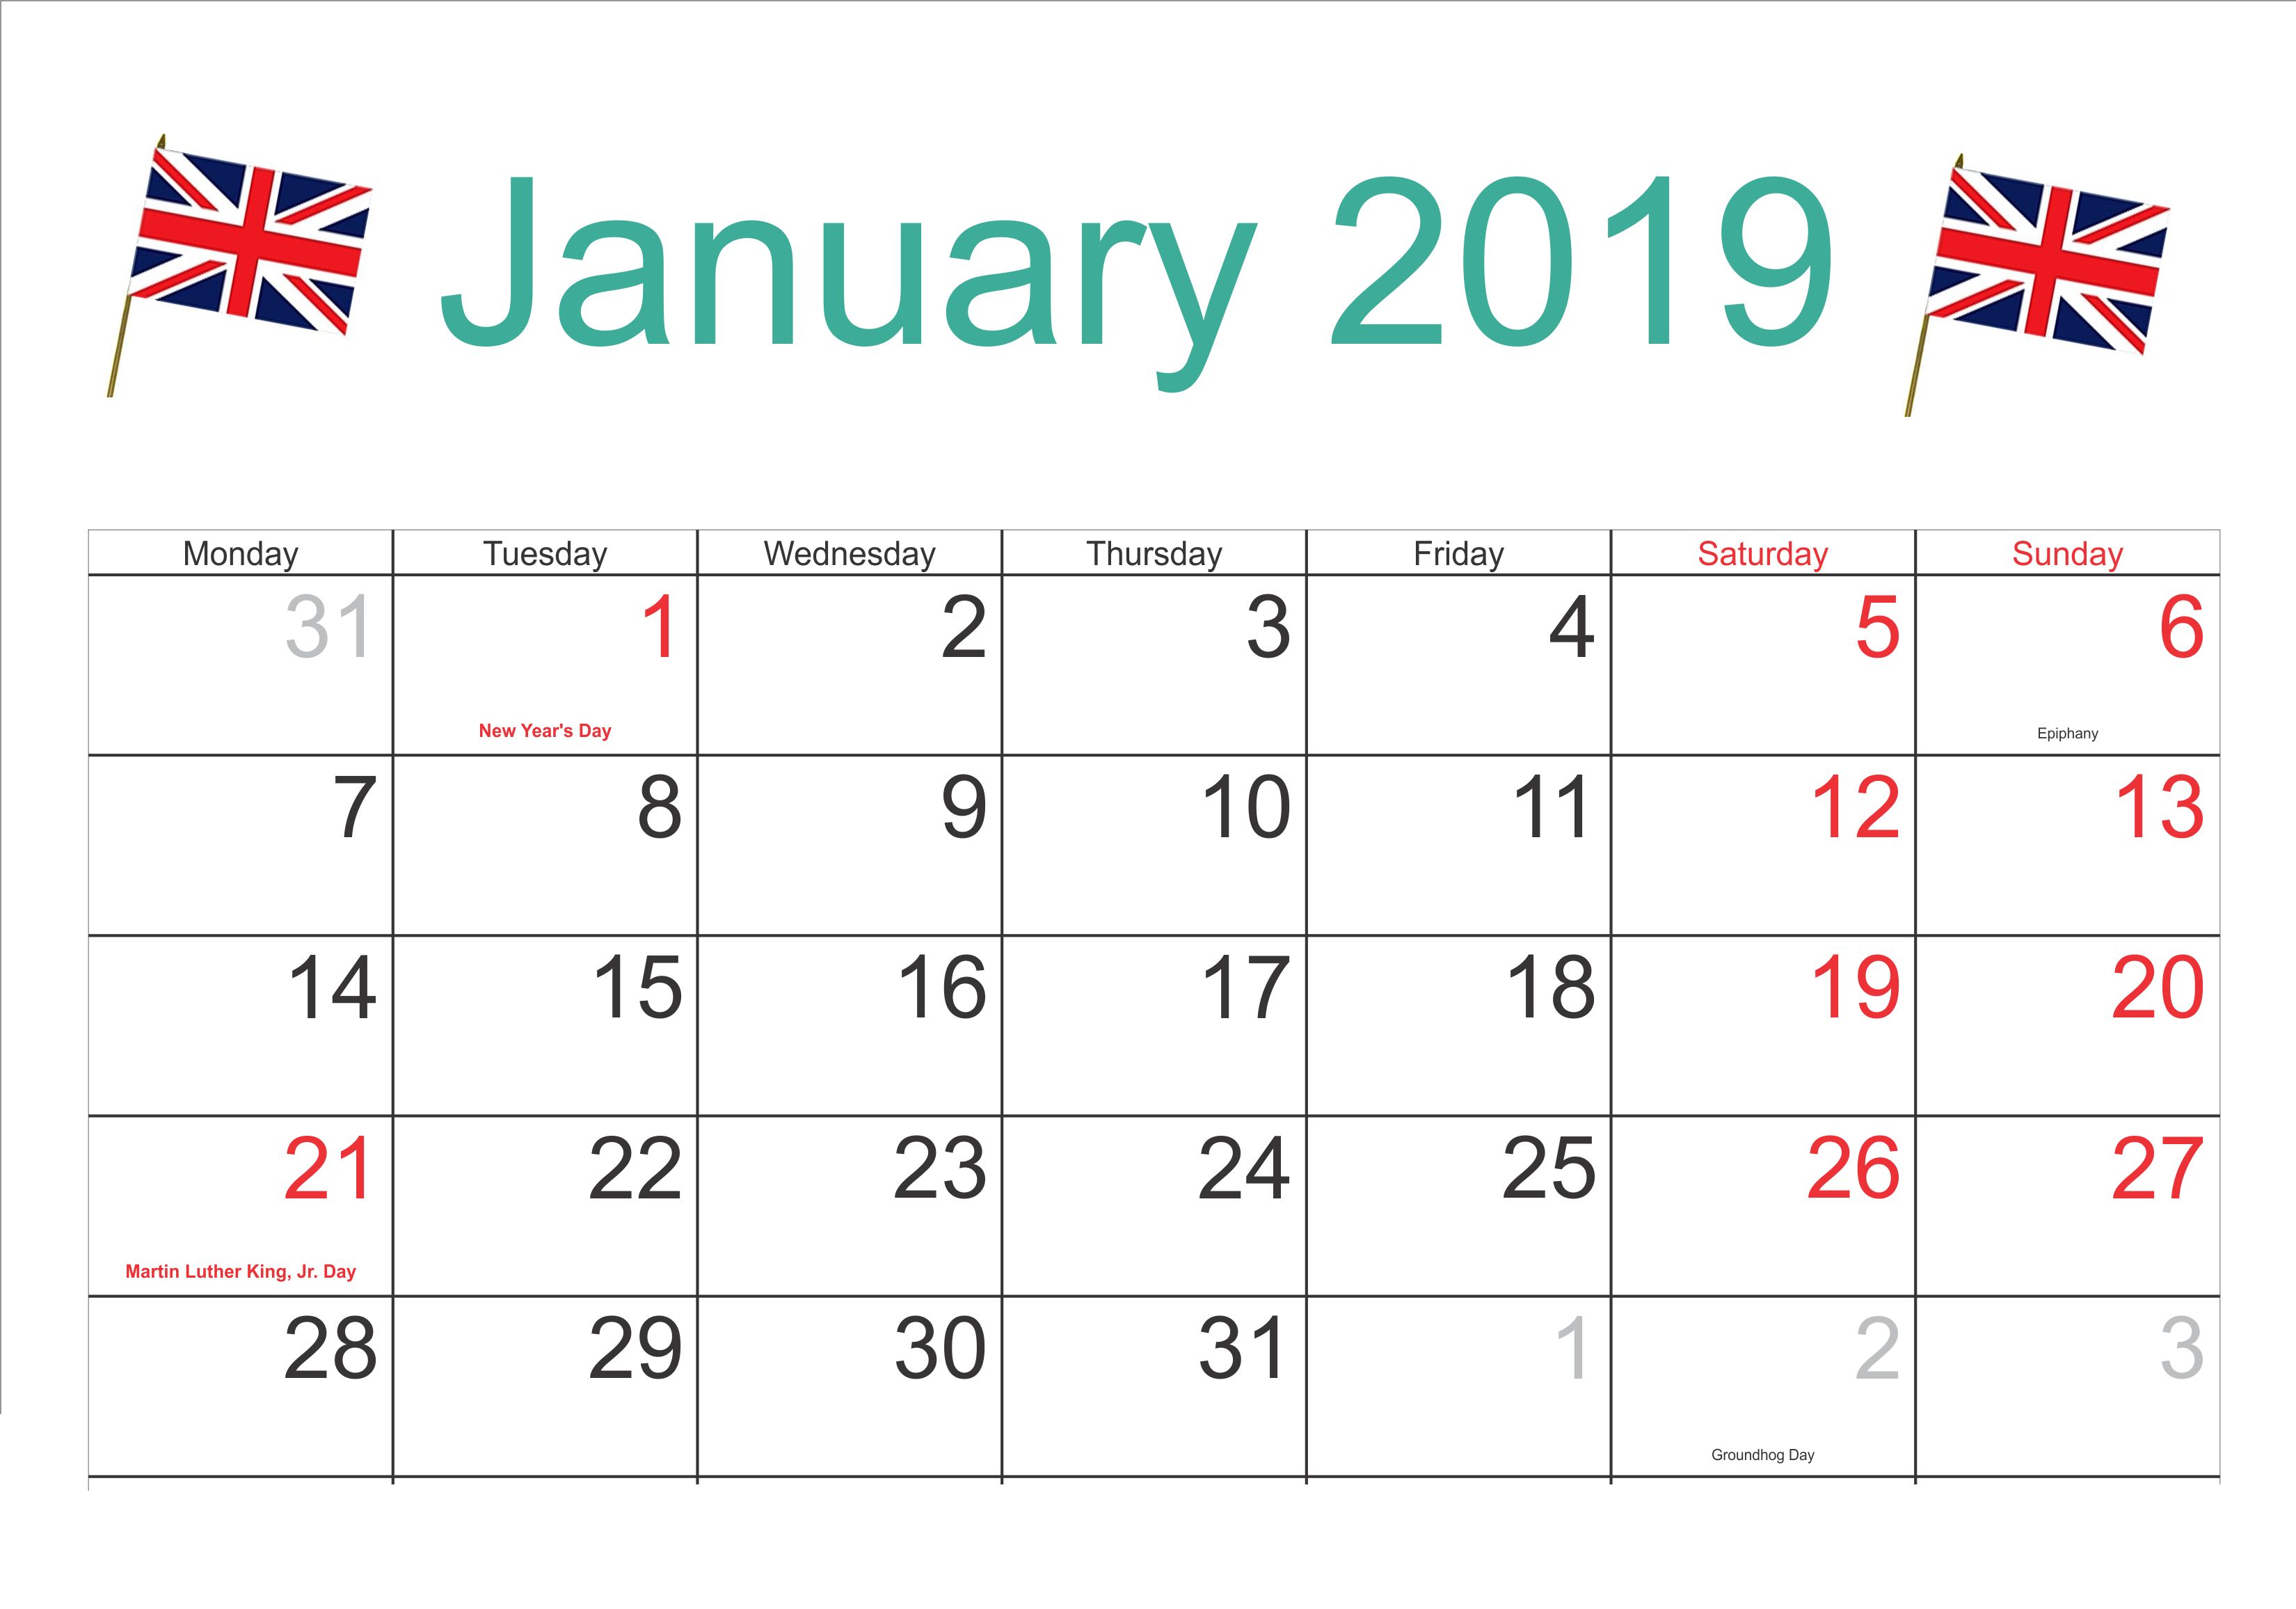 January 2019 UK Calendar With Holidays